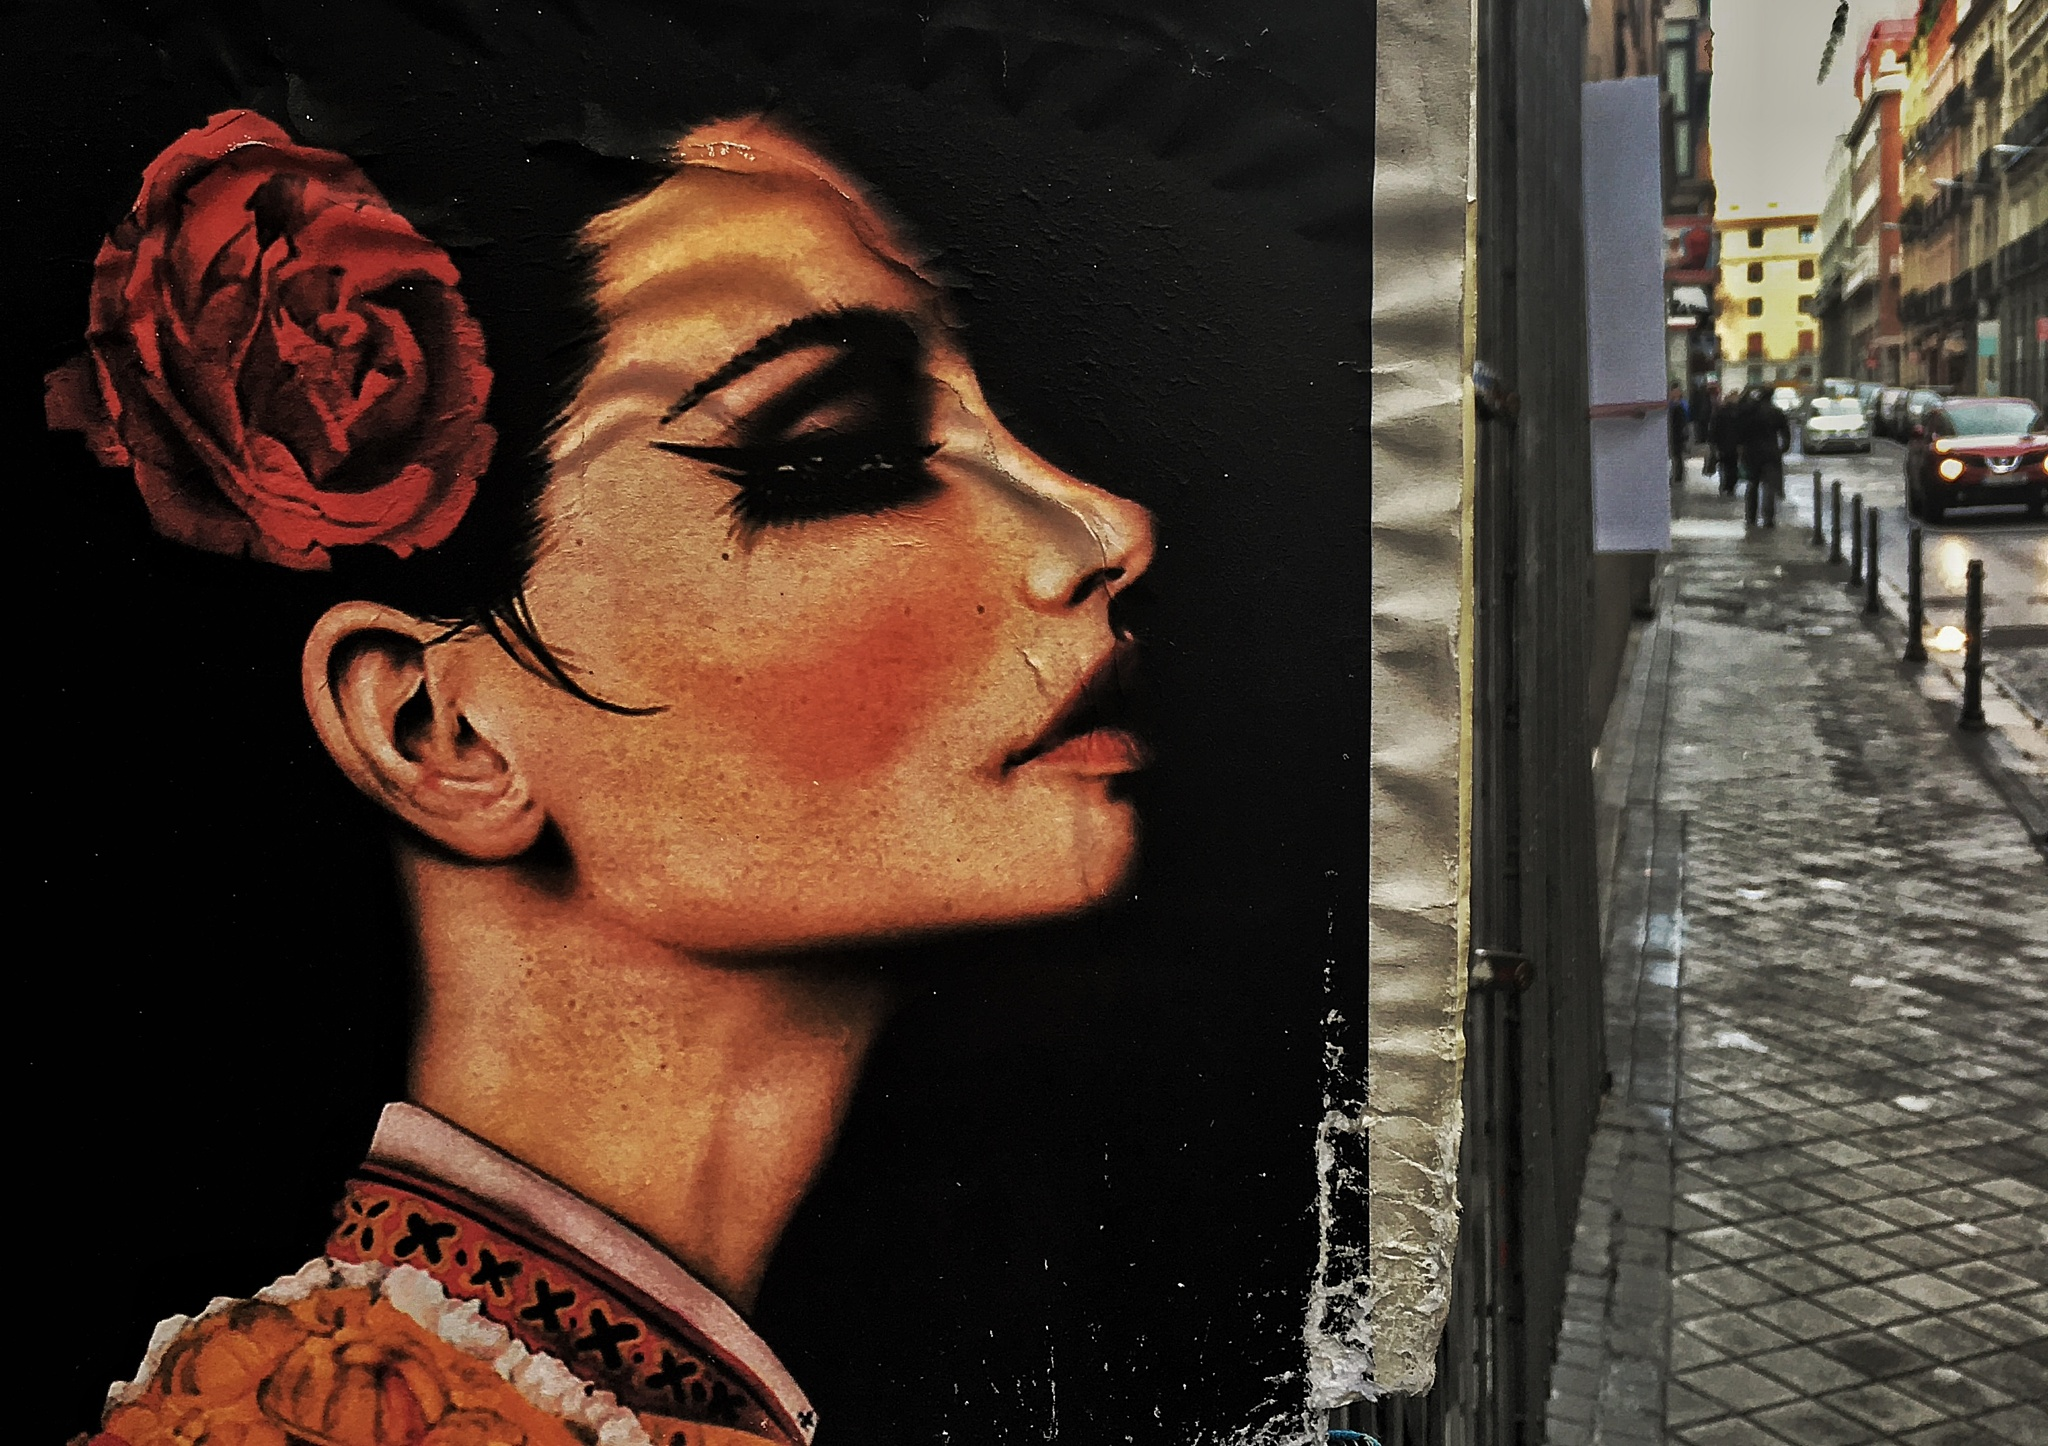 Looking to the street by Miguel Ballabriga